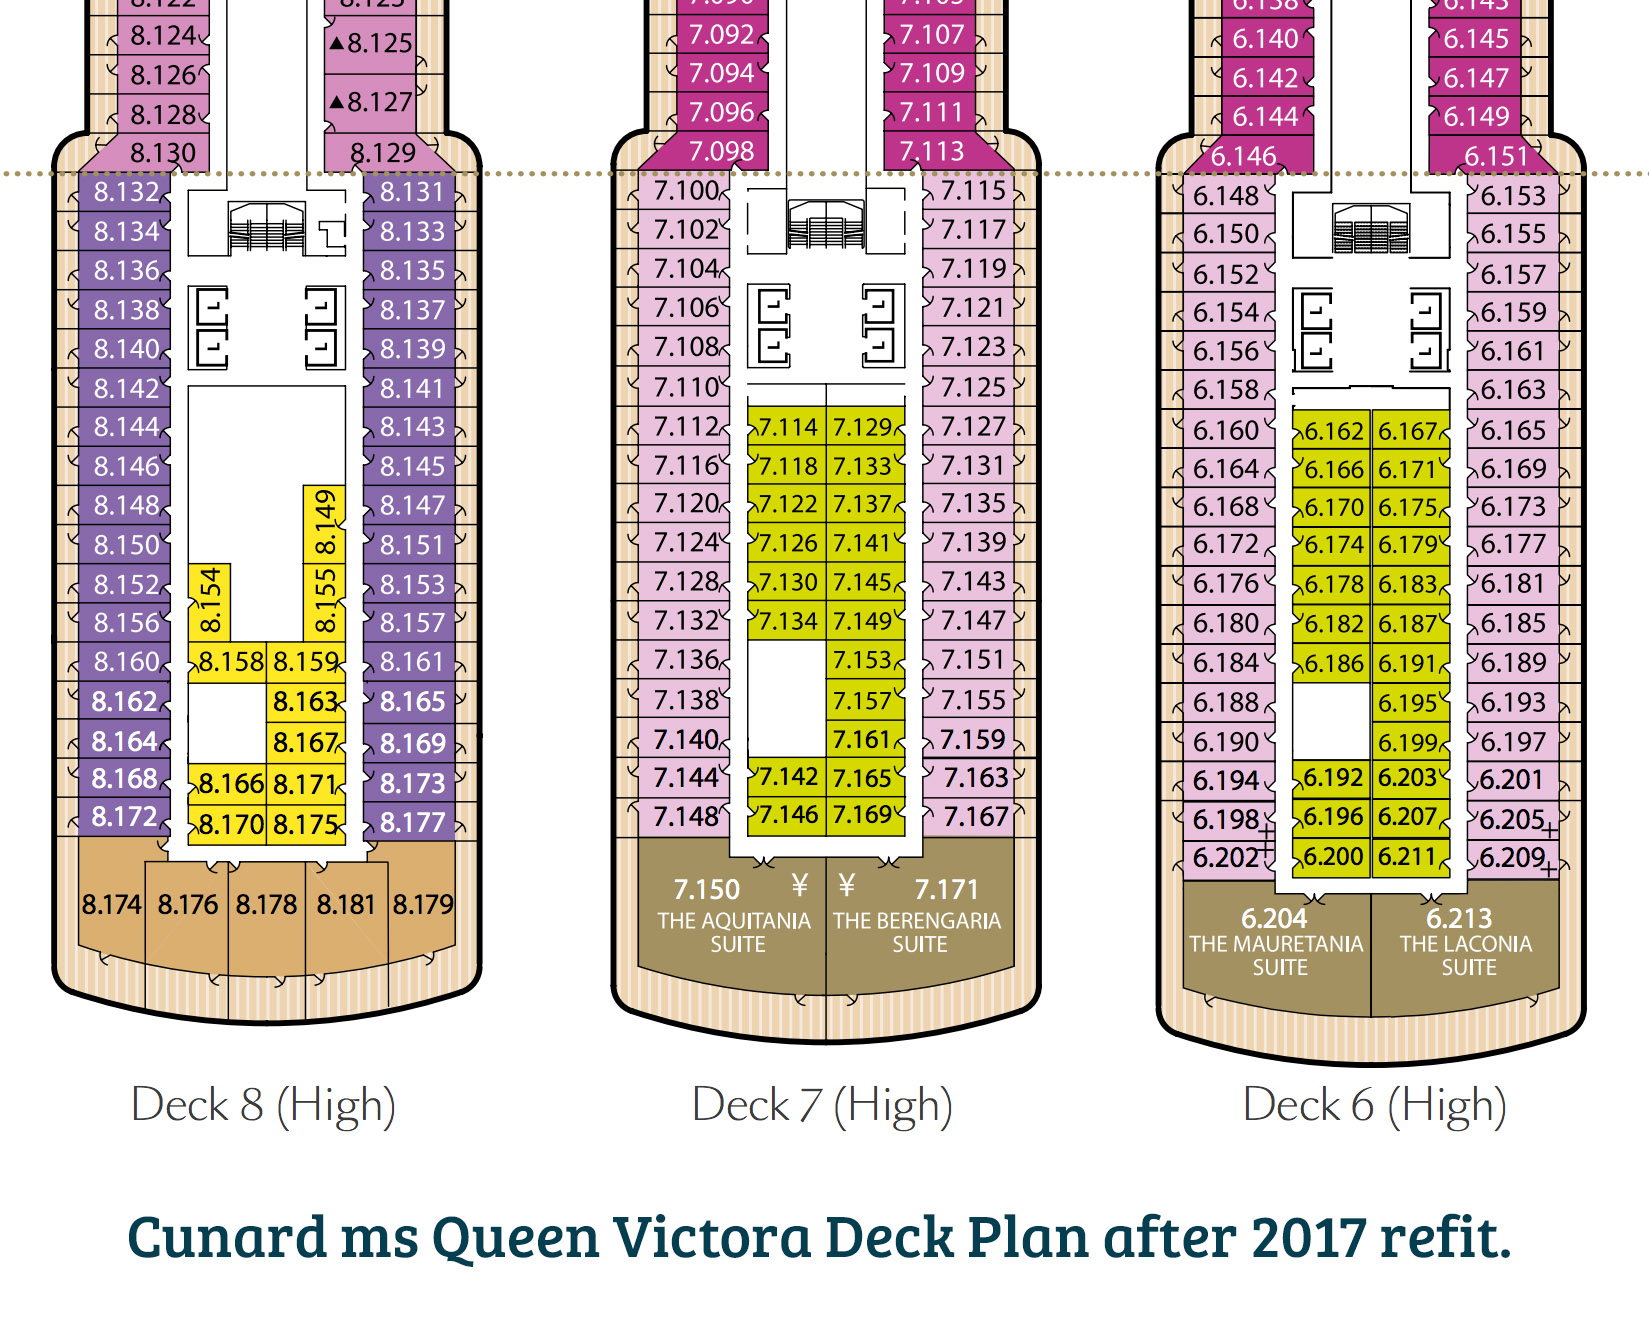 Photo Seabourn Odyssey Deck Plan Images Ideas Marvelous